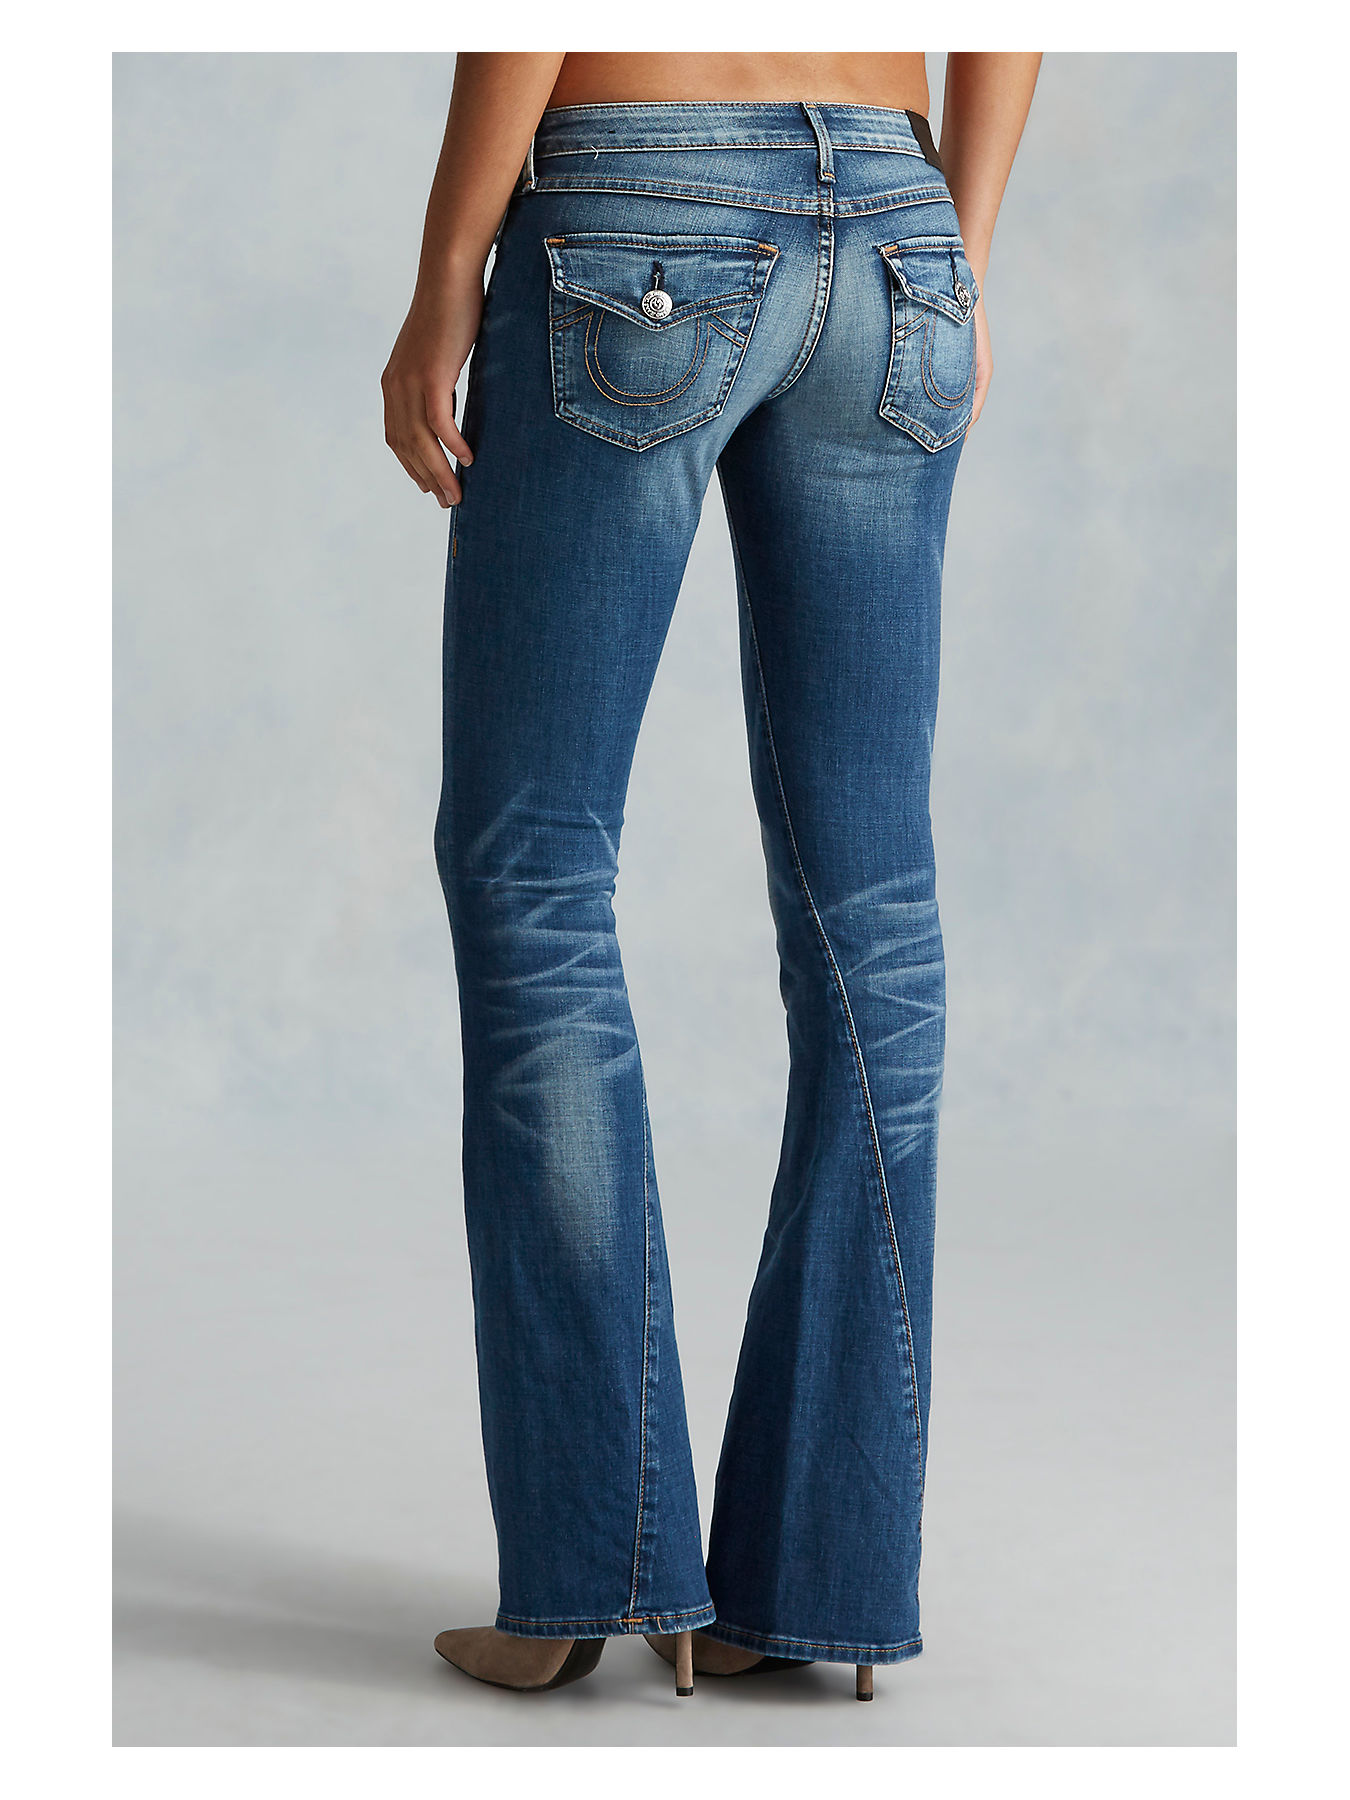 7a5b7ac8a4b7c Flare Leg Jeans - Low Rise Flare Jeans - True Religion